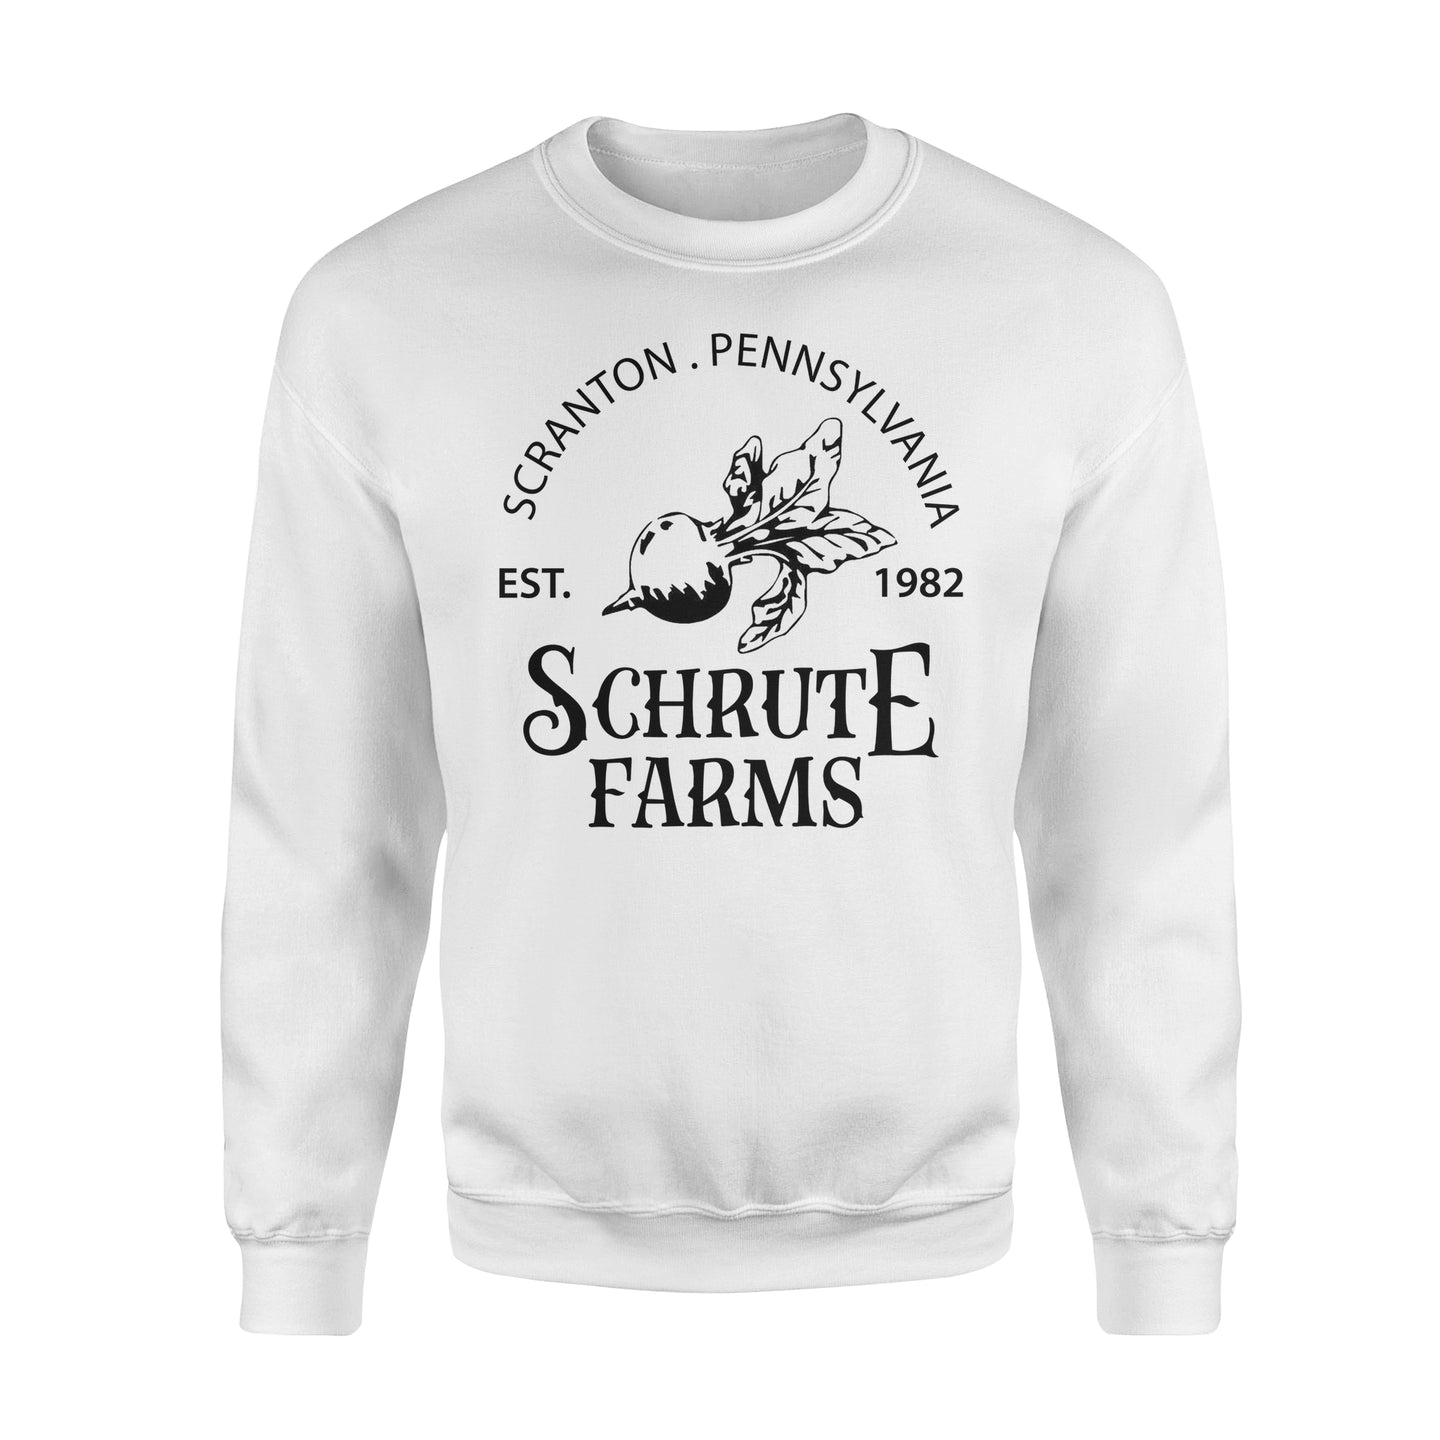 FOAL14 The Office Sweatshirt, Schrute Farms, Adult Unisex, Size S-5XL